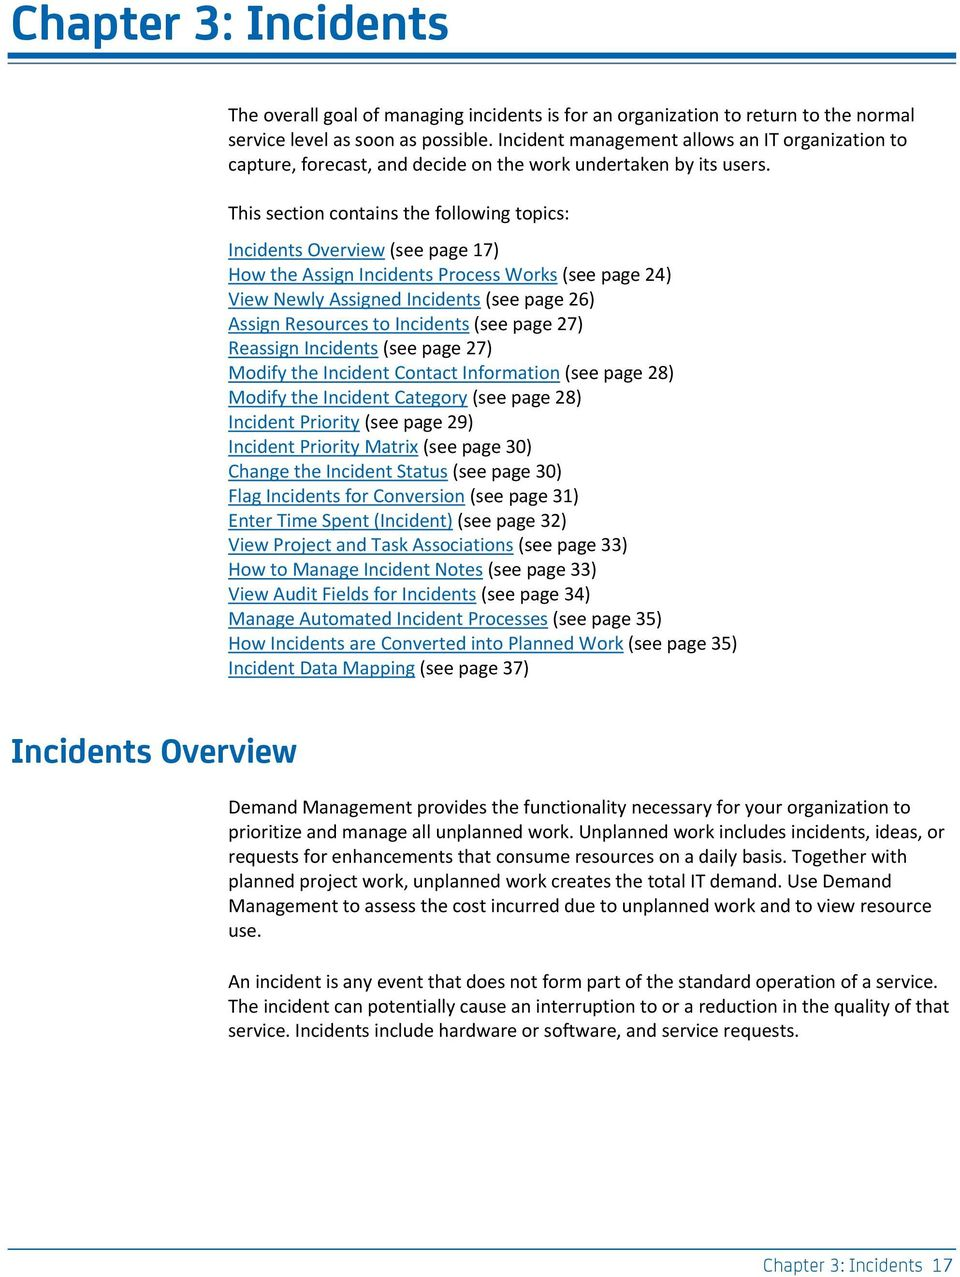 This section contains the following topics: Incidents Overview (see page 17) How the Assign Incidents Process Works (see page 24) View Newly Assigned Incidents (see page 26) Assign Resources to